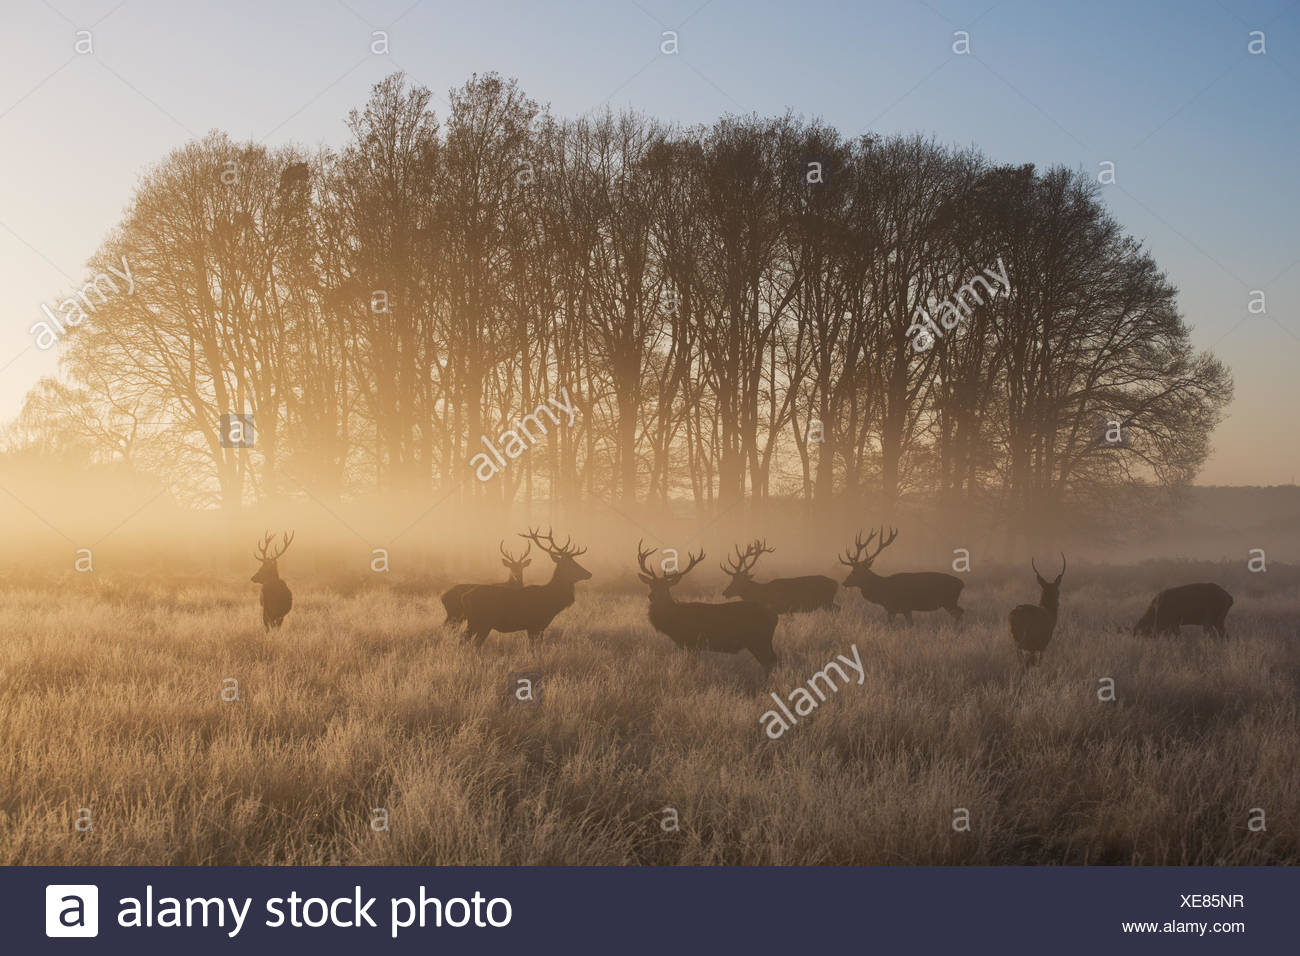 A large group of red deer stags, Cervus elaphus, in Richmond Park at dawn. - Stock Image